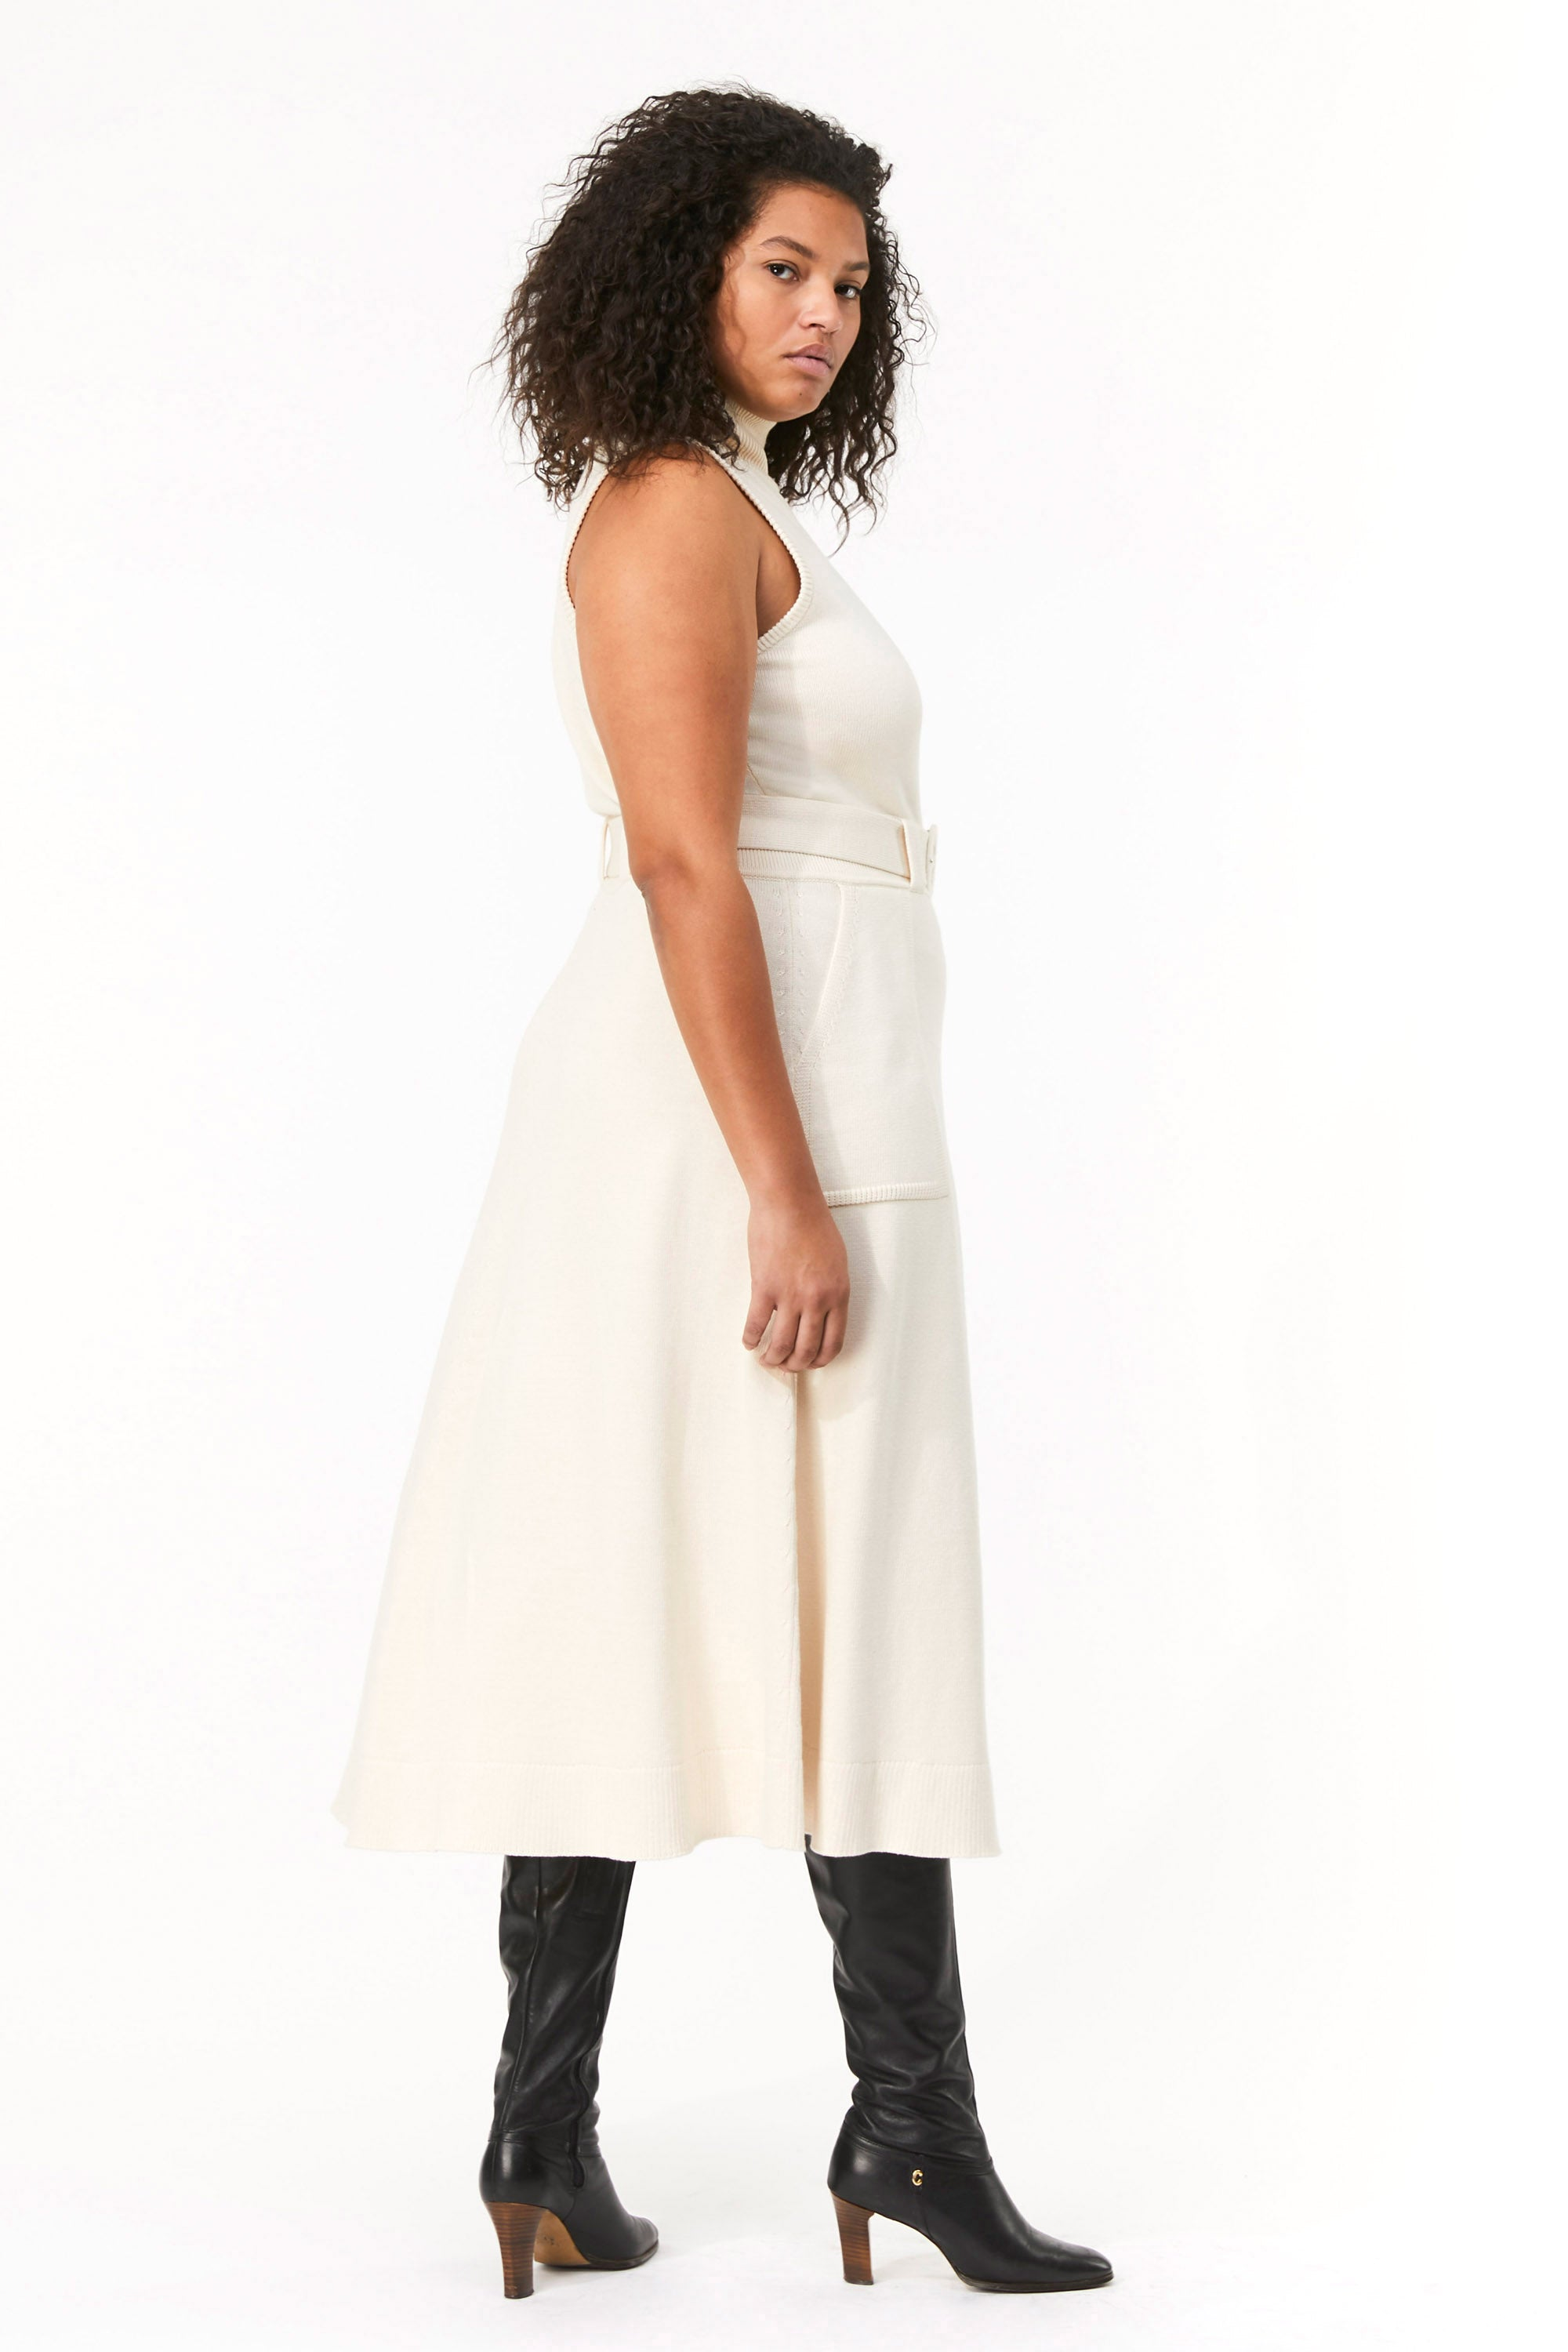 Mara Hoffman Extended Ivory Elle Dress in organic cotton (side)